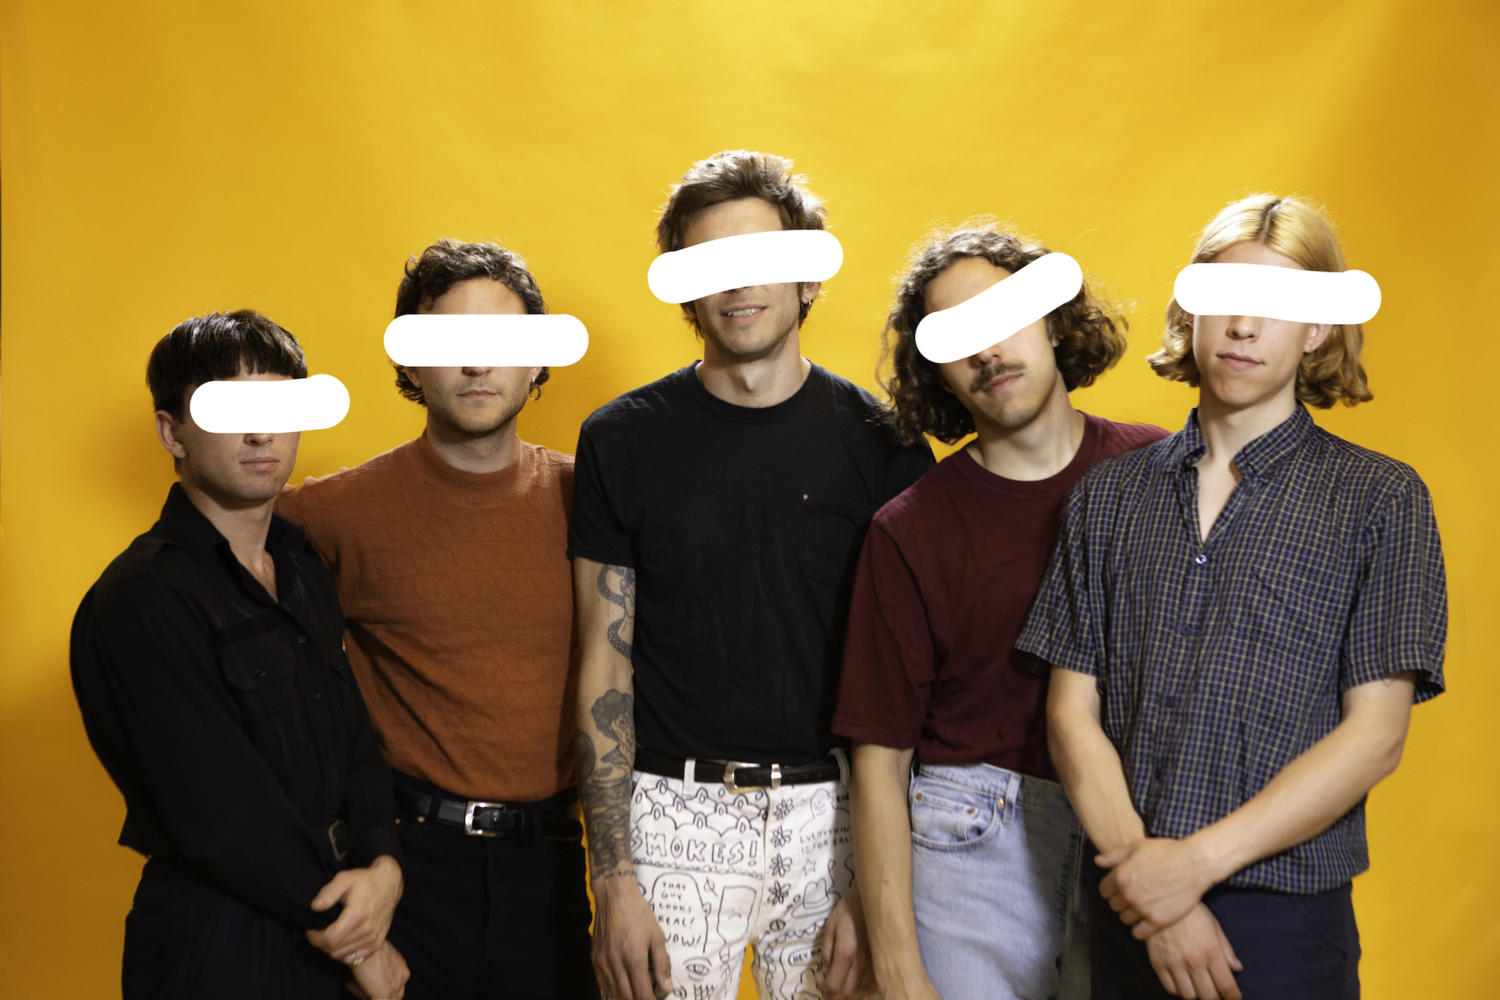 Pottery release 'Take Your Time'